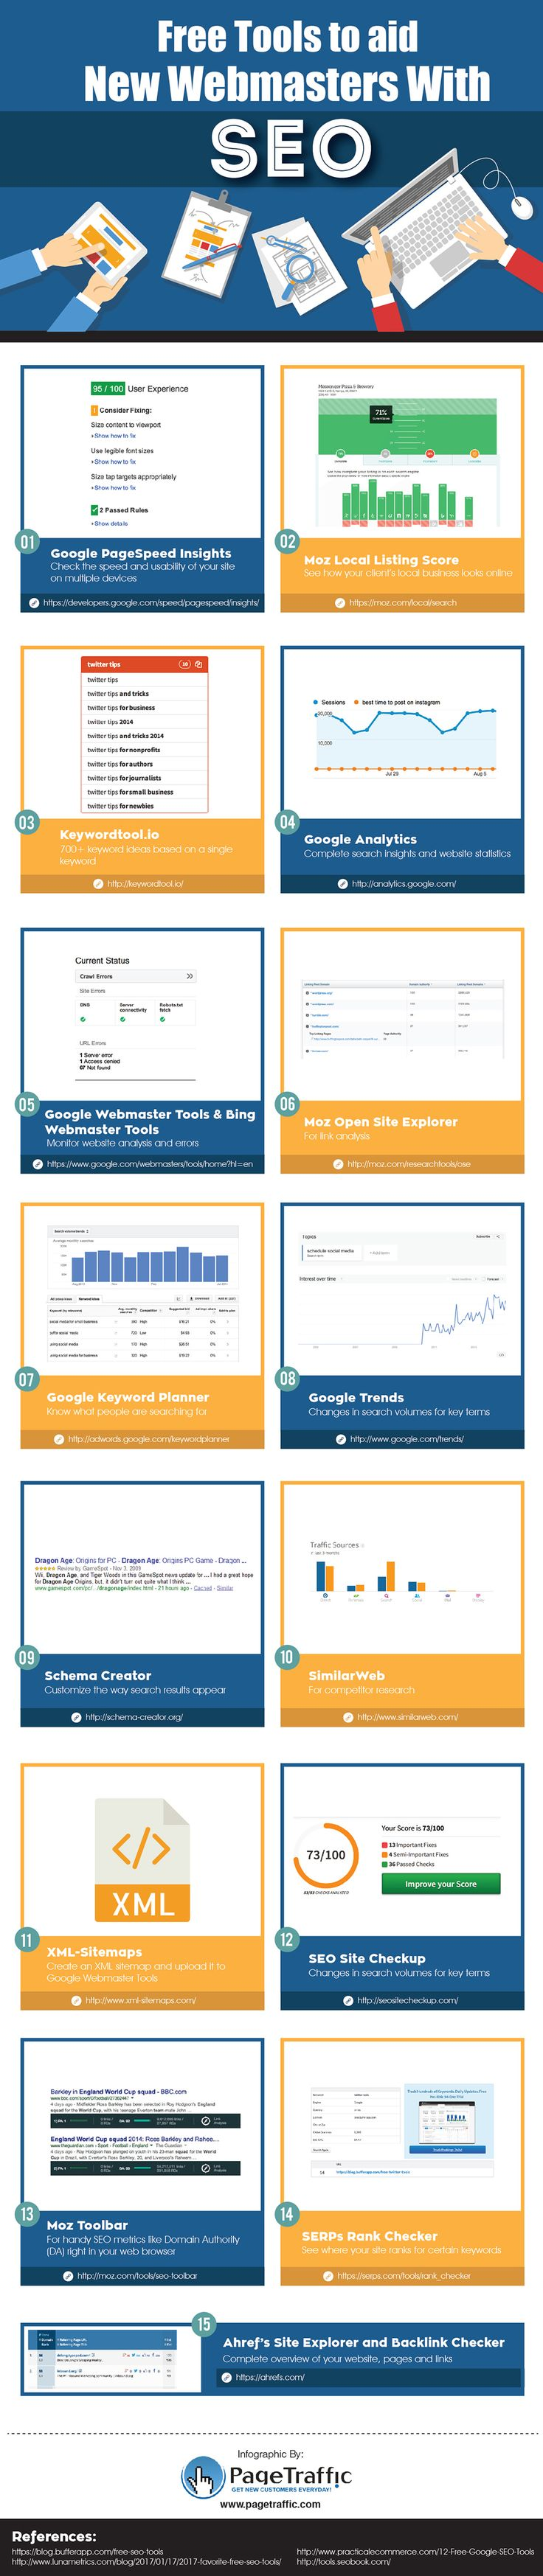 15 Free Tools to Help Track and Improve SEO Performance [Infographic] | Social Media Today